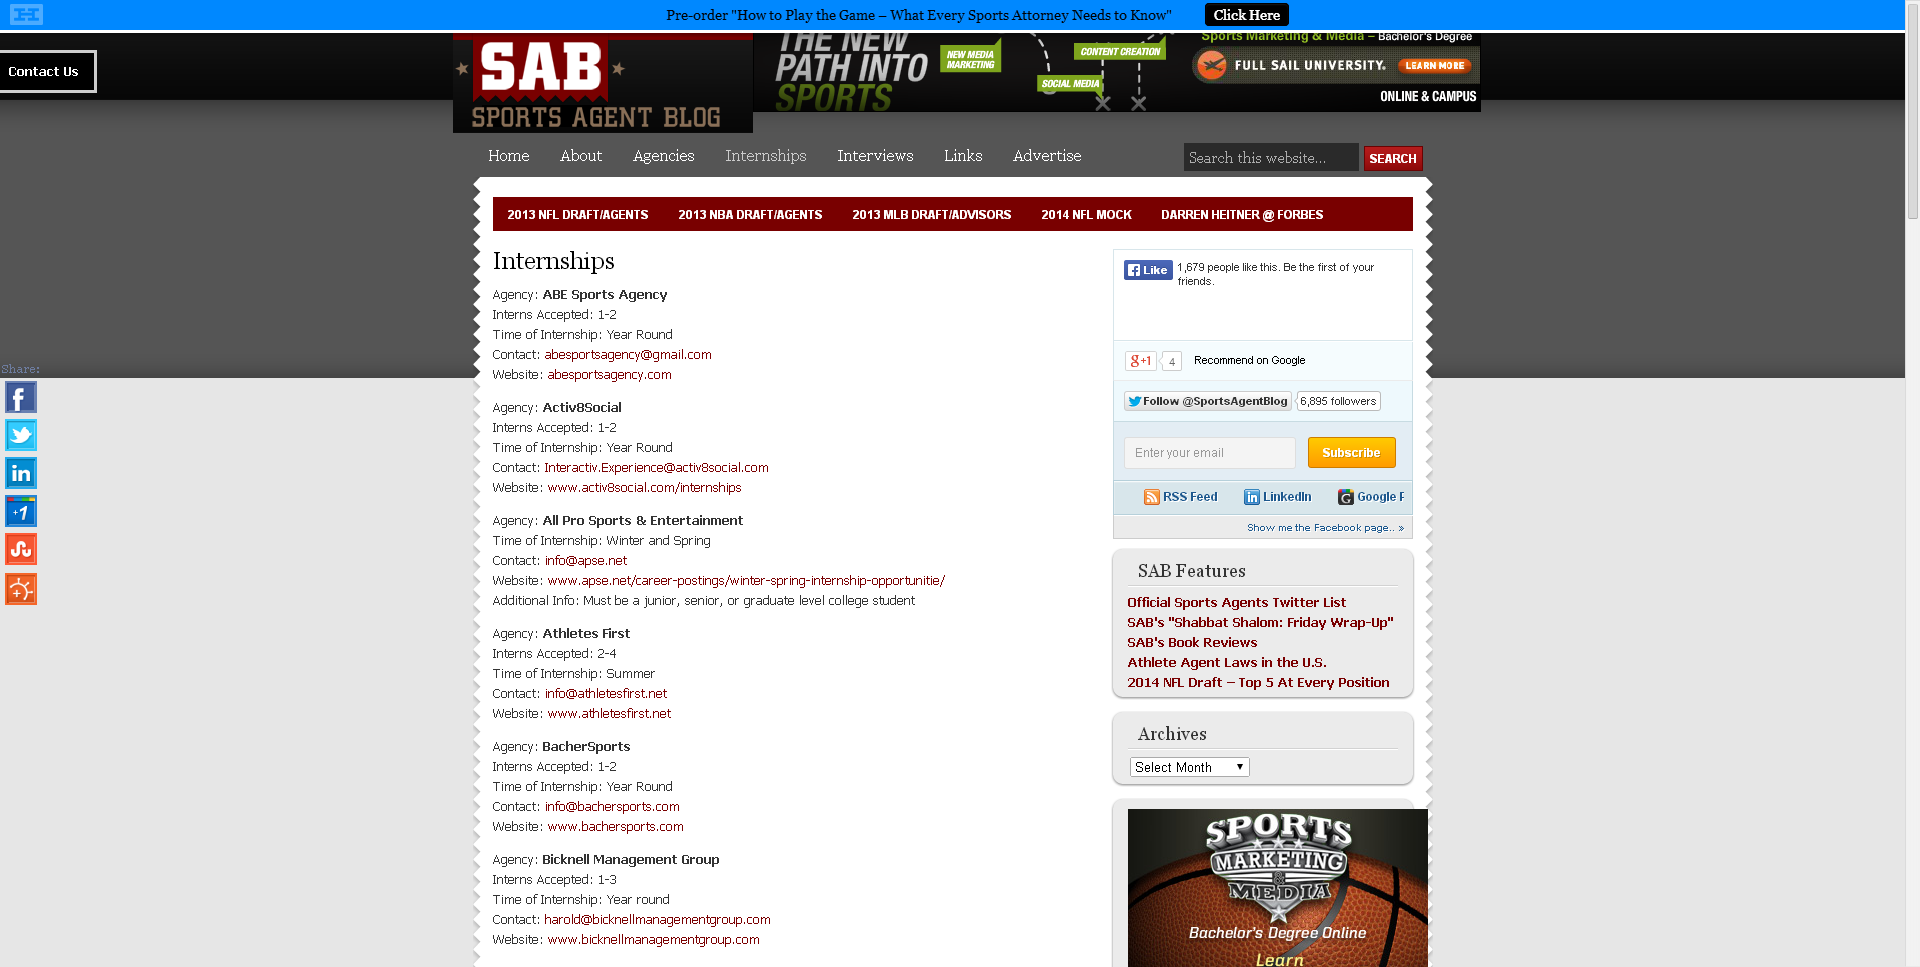 Sports Agent Blog that provides the website and contact